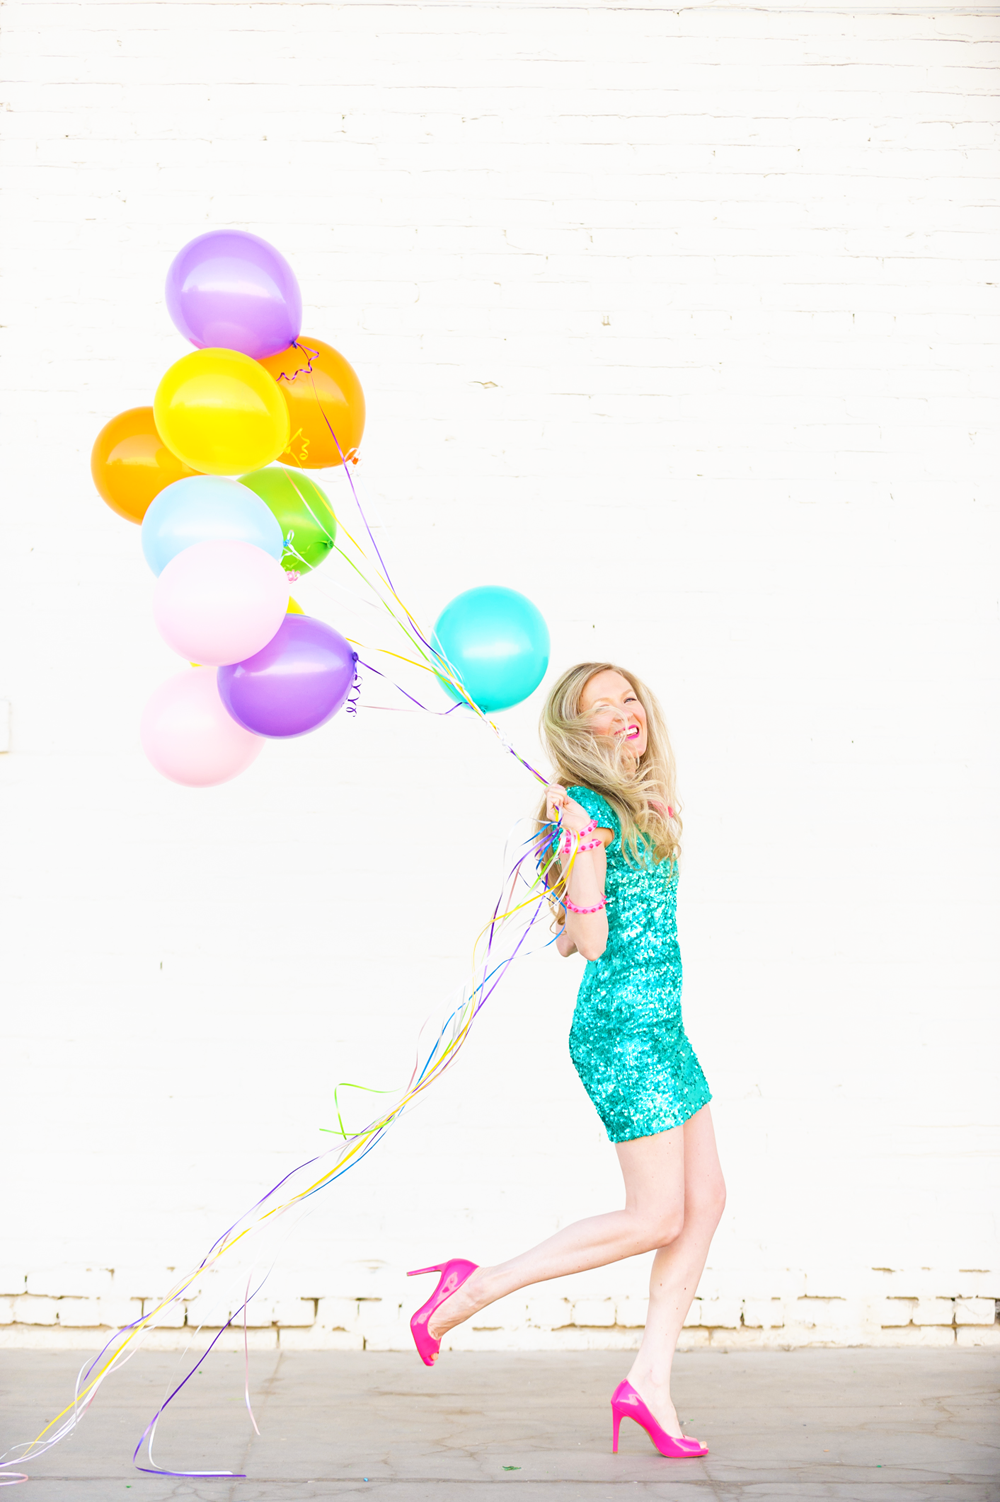 Bombay_Blonde_Running_Balloons.png